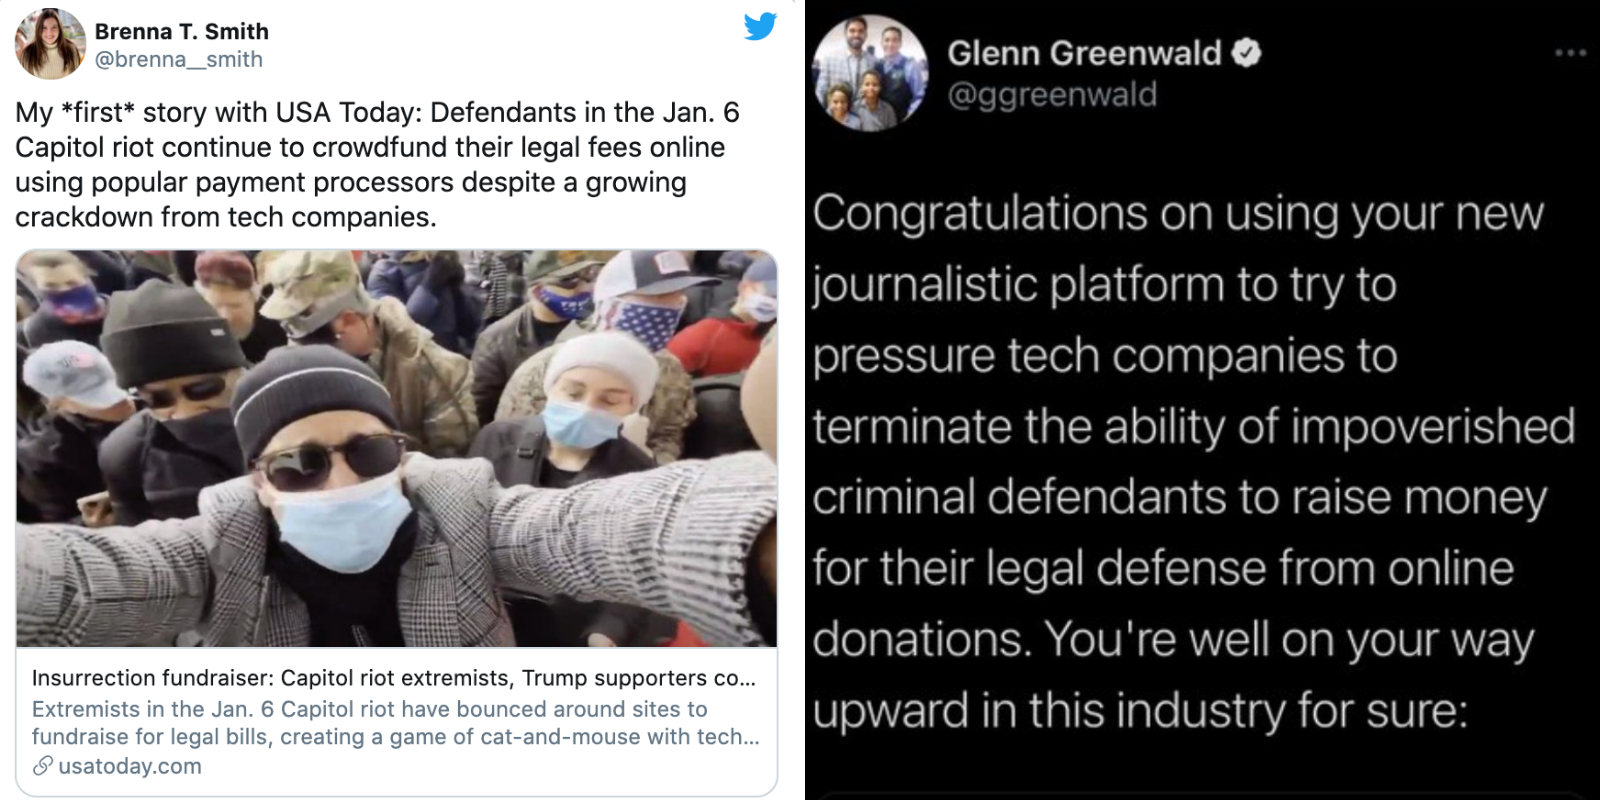 Liberal journalists cry 'harassment' after Glenn Greenwald and Jack Posobiec criticize USA Today article advocating for censorship